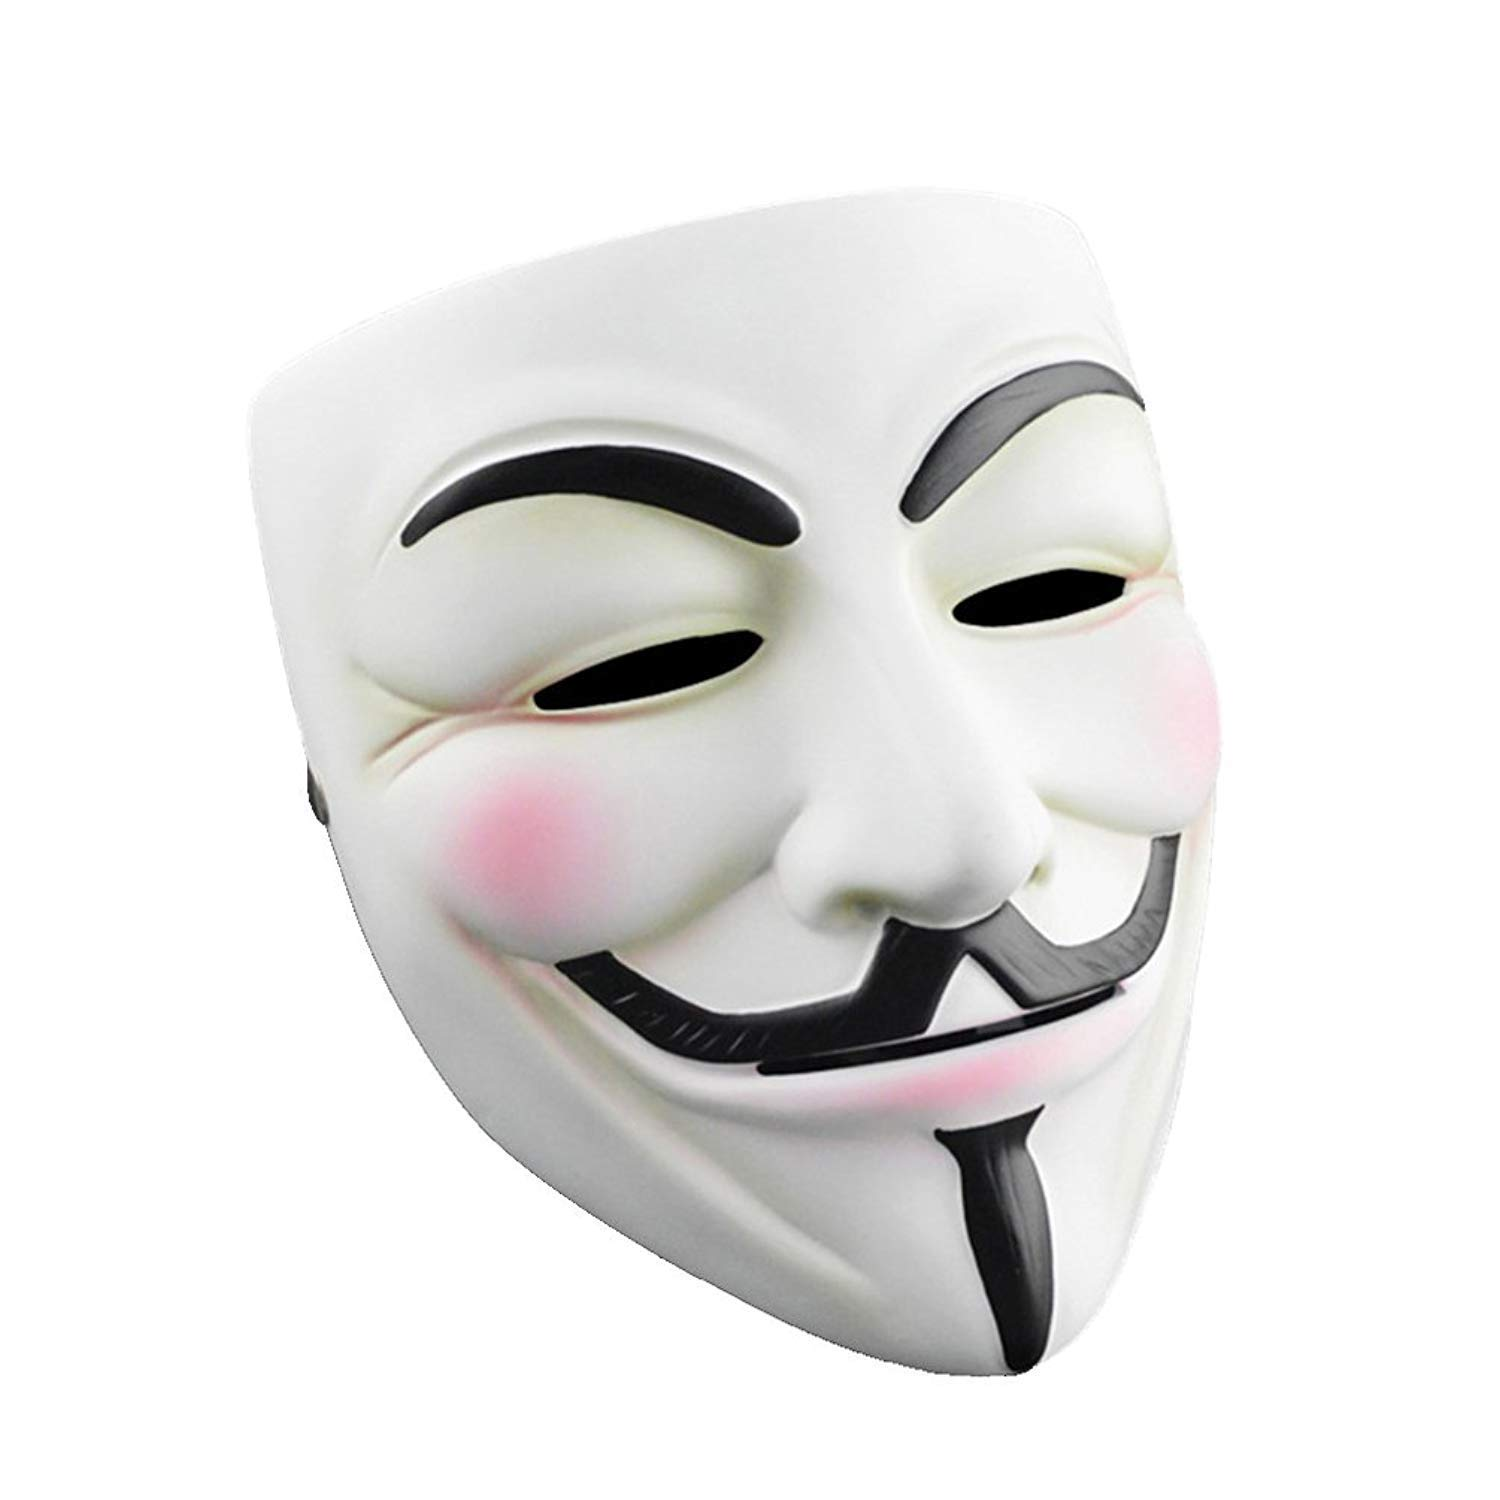 RASTPOAL Halloween Masks V for Vendetta Mask, Anonymous/Guy Fawkes for 2018 Halloween Costume White by RASTPOAL